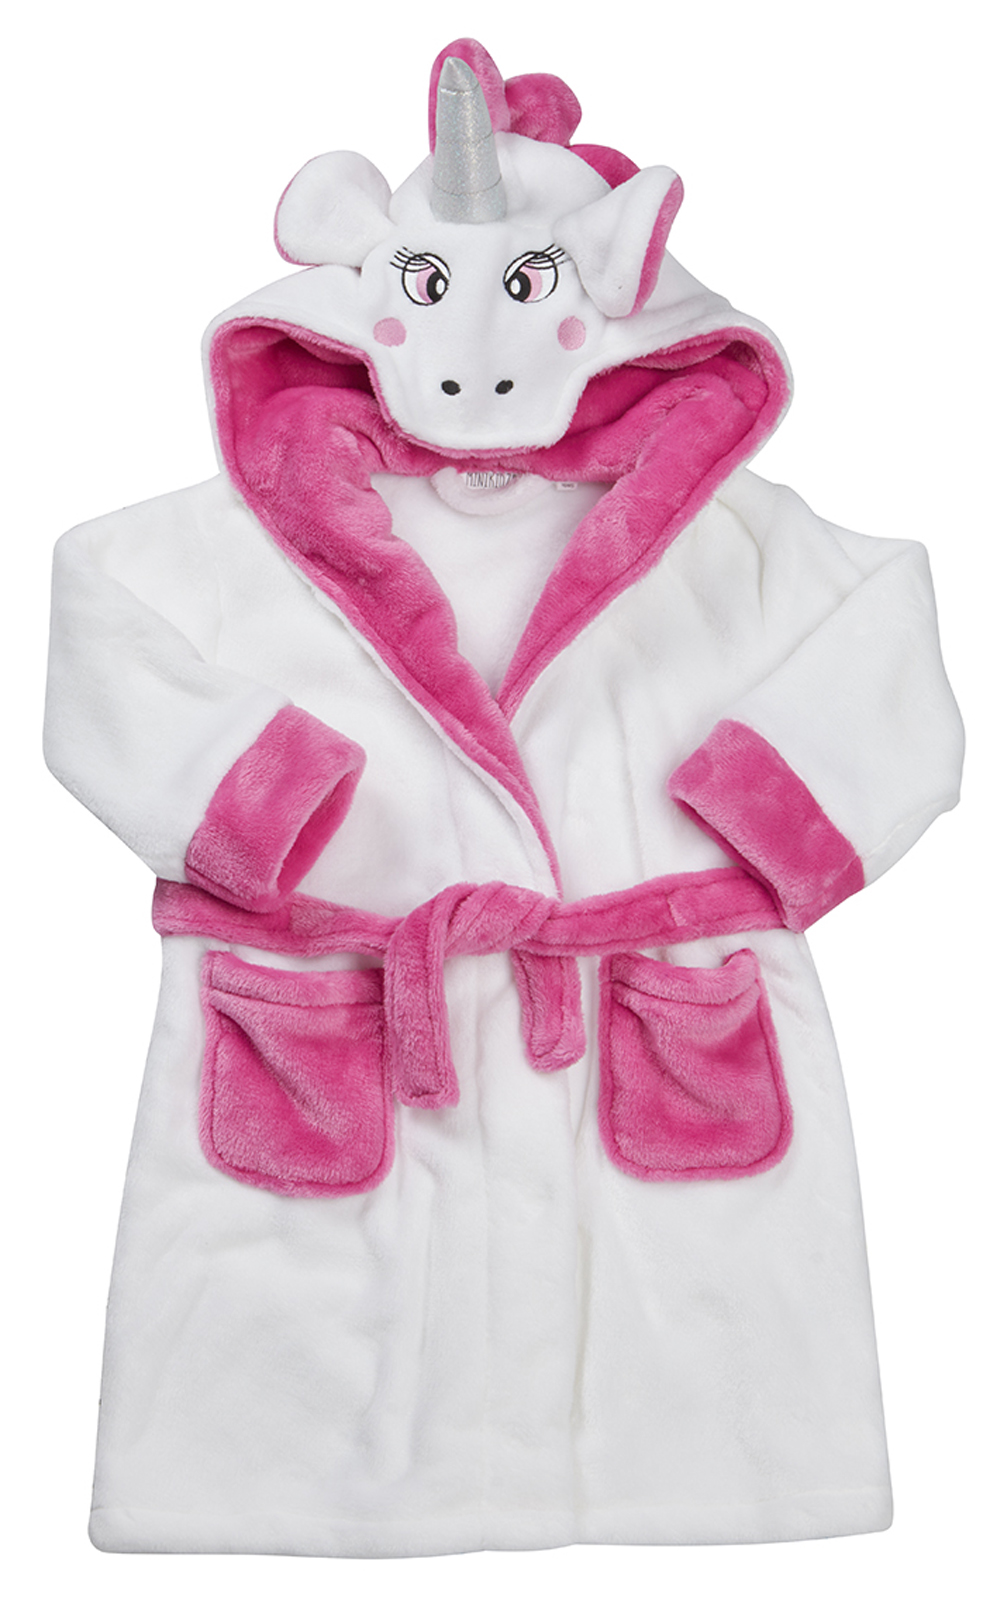 Girls Novelty 3D Dressing Gown Soft Fleece Bathrobe Housecoat Xmas ...